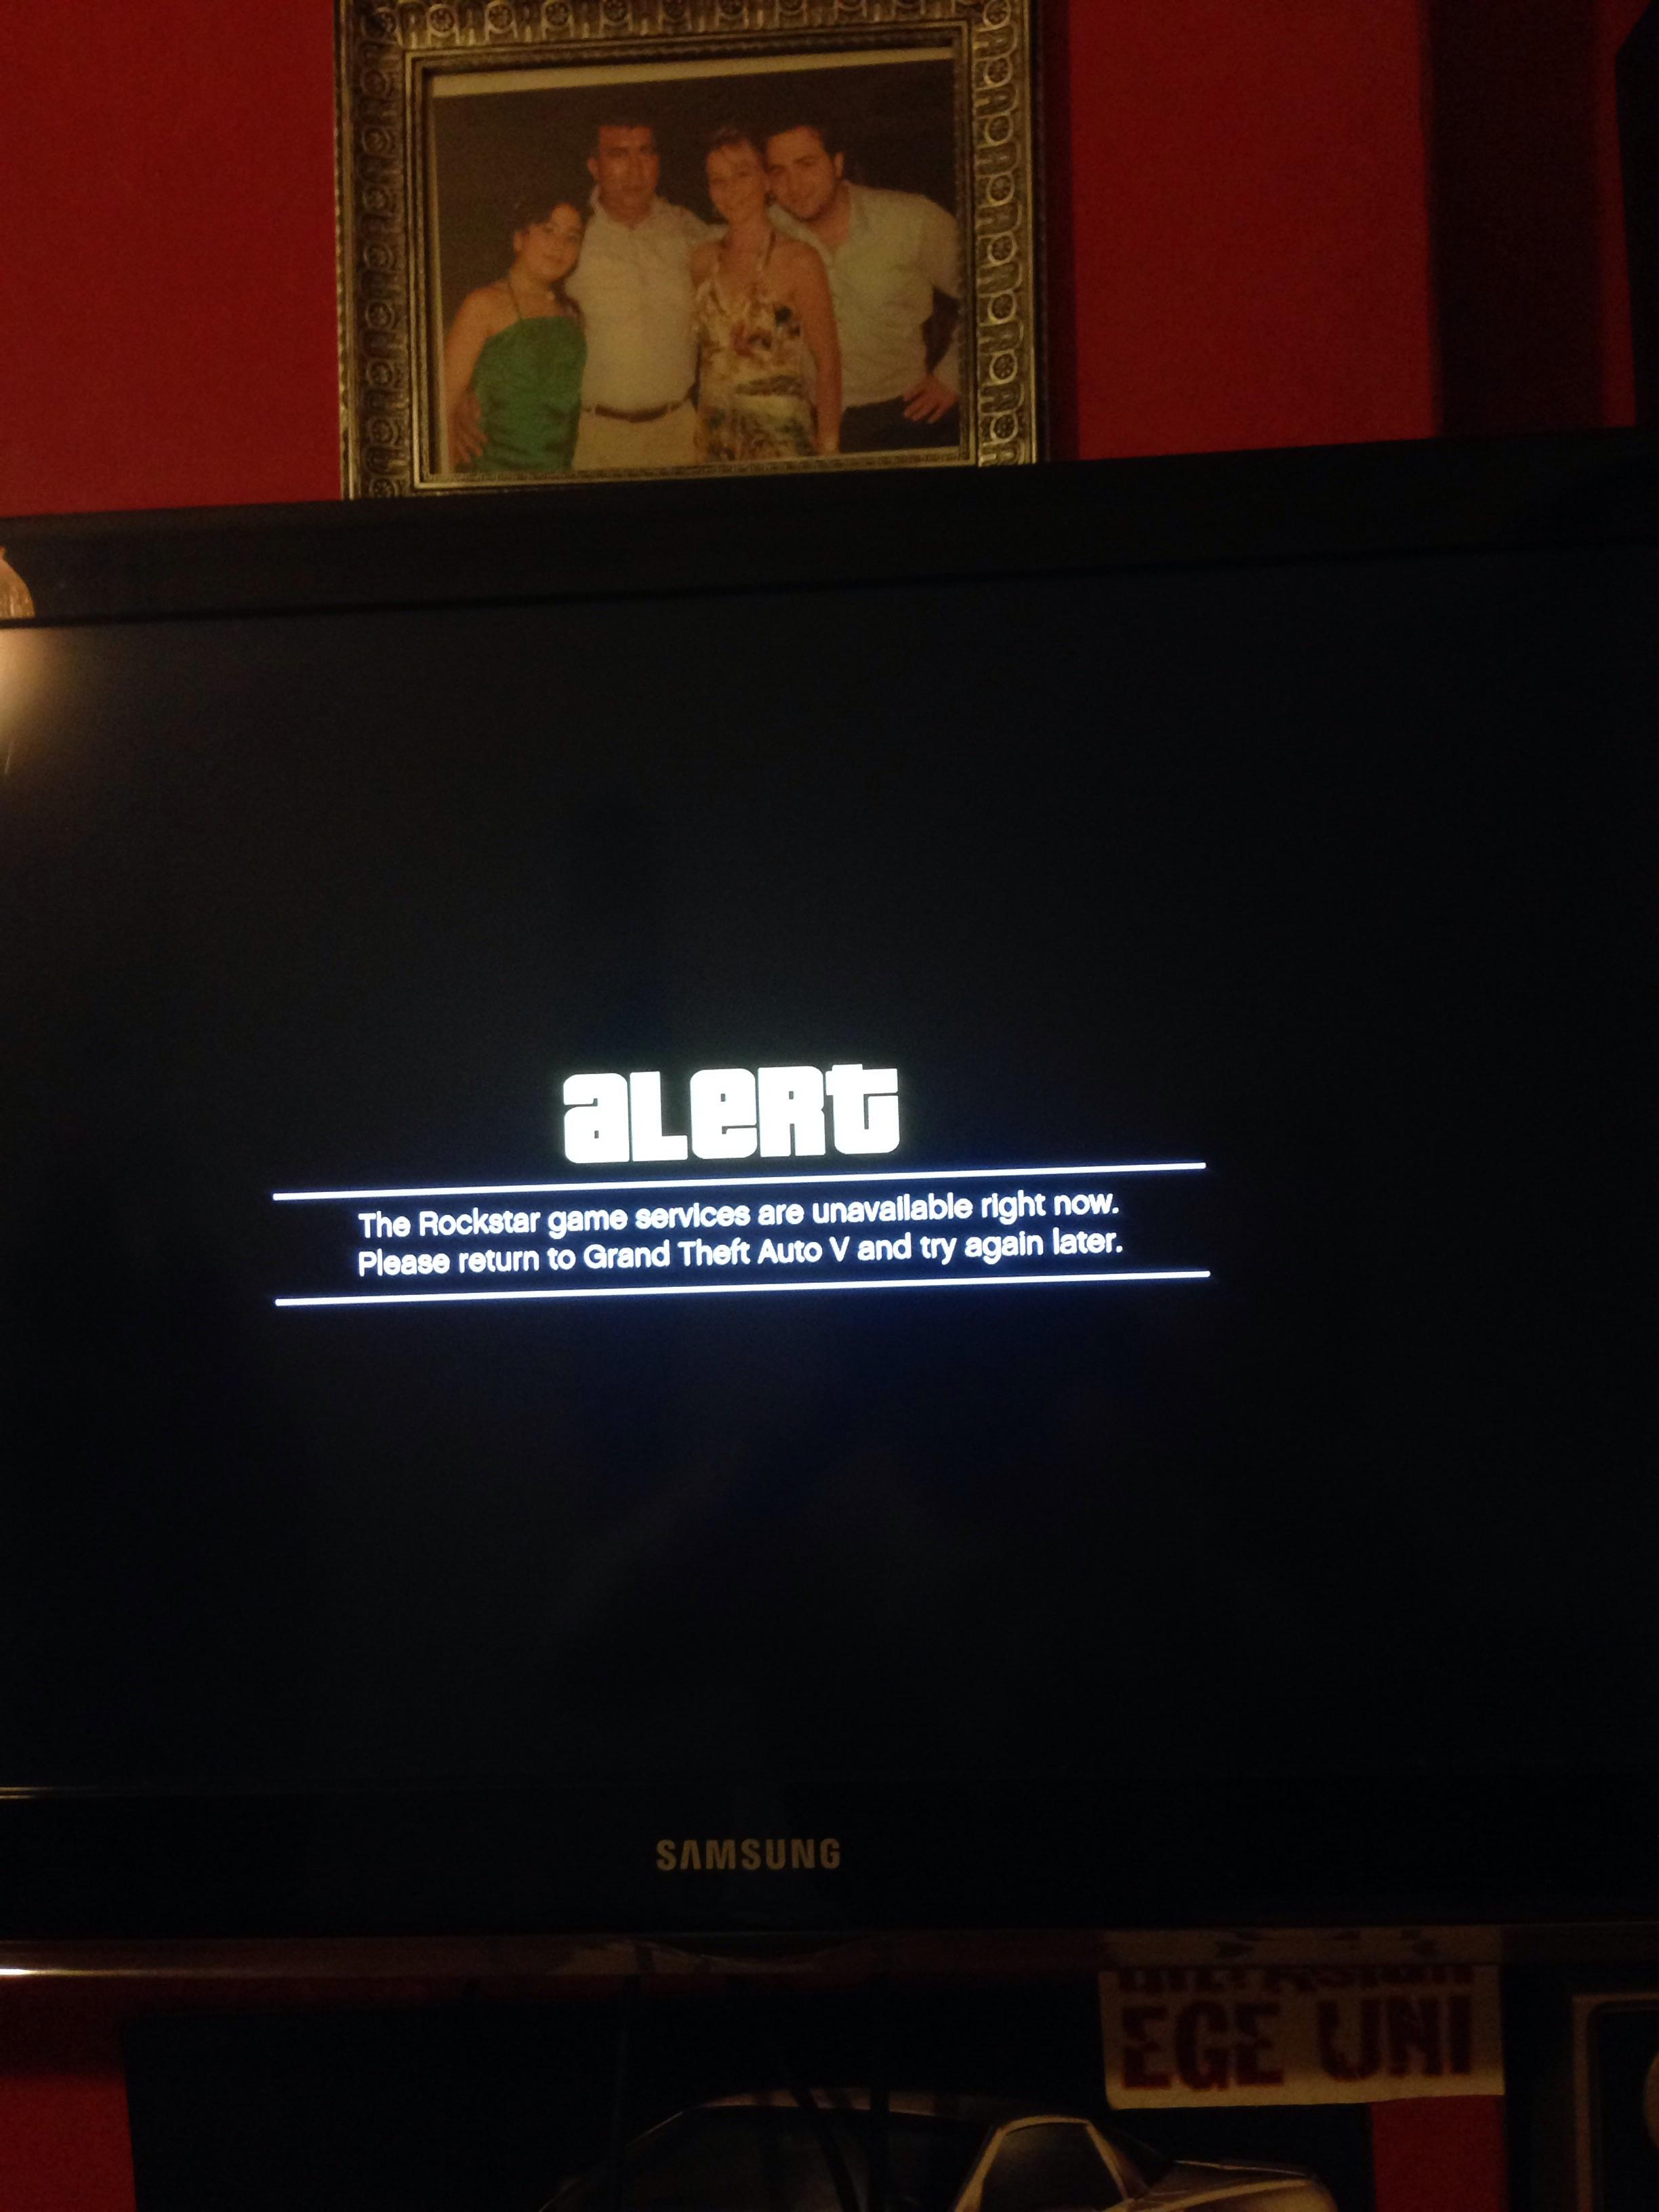 the rockstar game services are unavailable right now | Gameswalls org